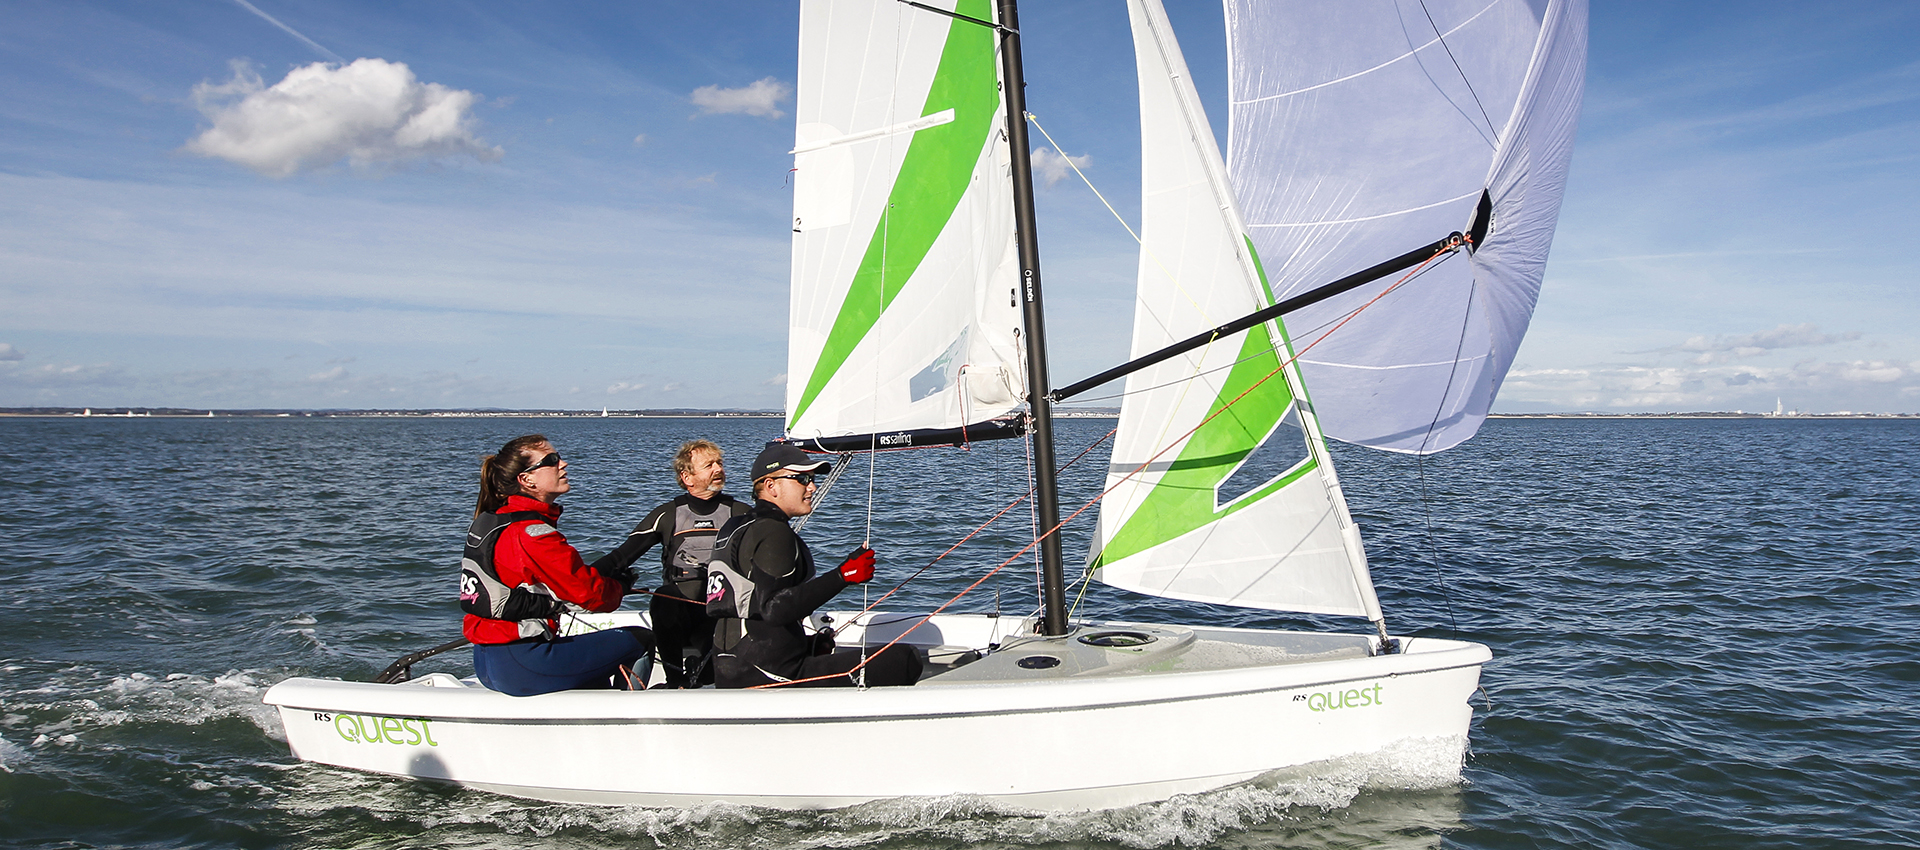 rs quest sailboat the